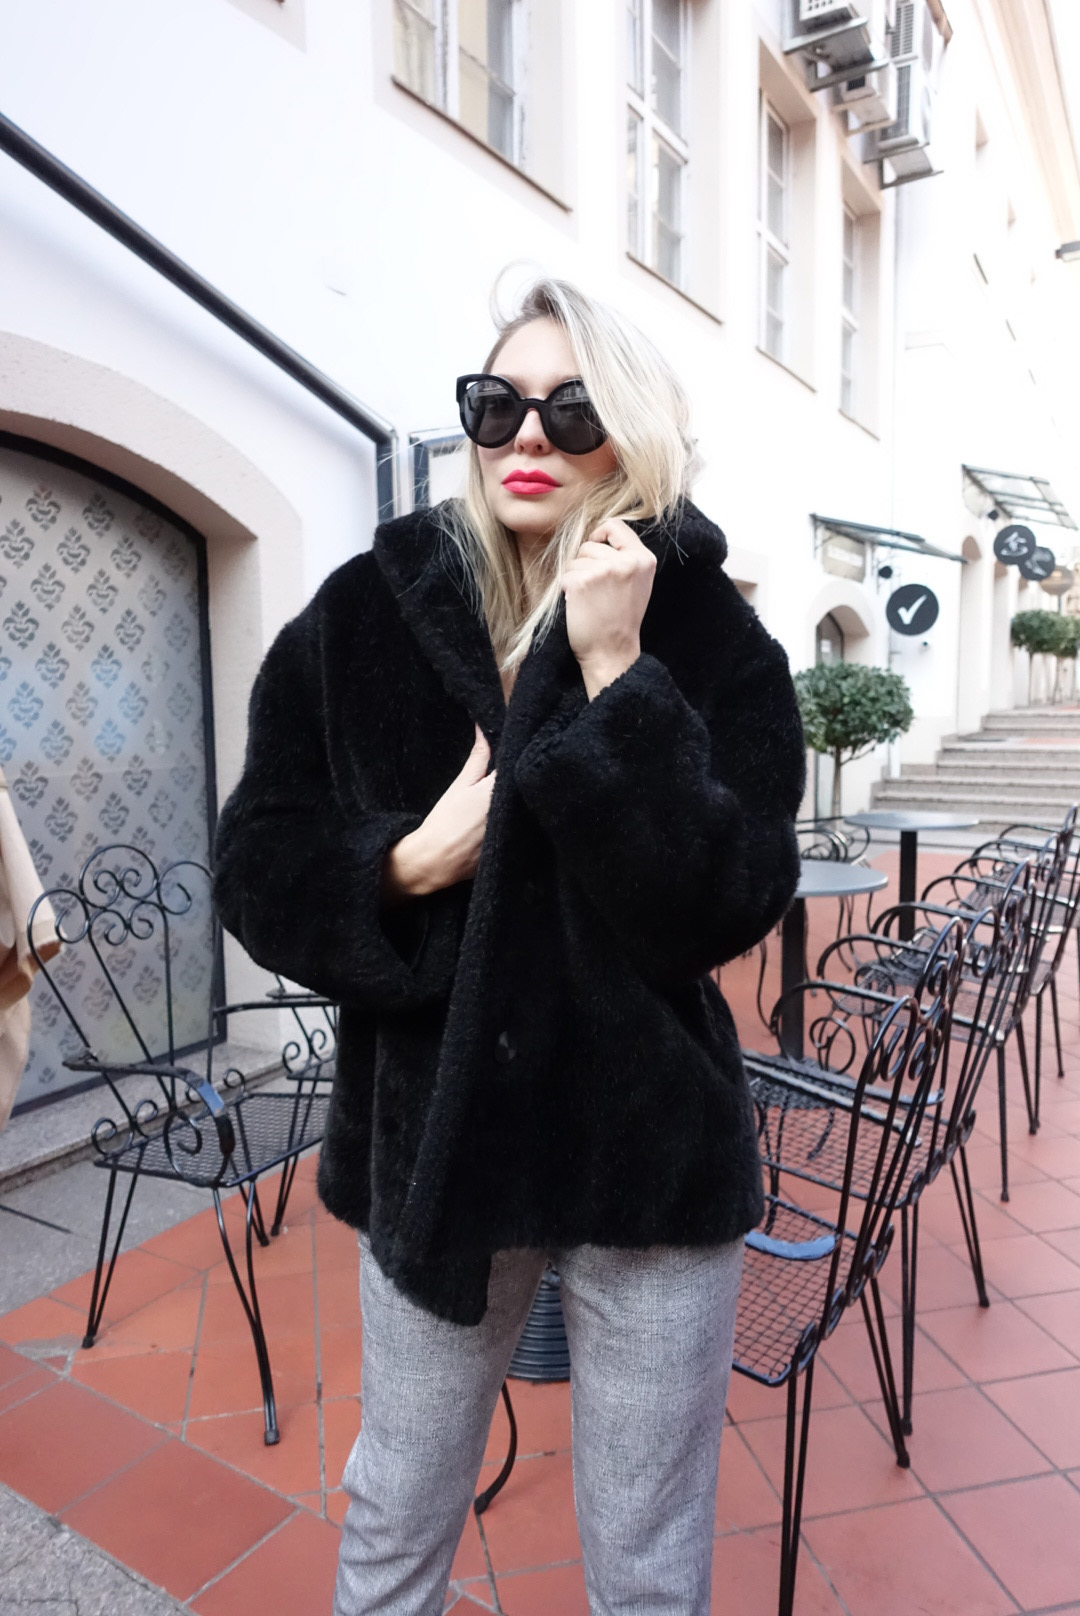 X jumpsuitX fur coatX fendiX sunglassesX fendi sunglassesX jimmy chooX pumps